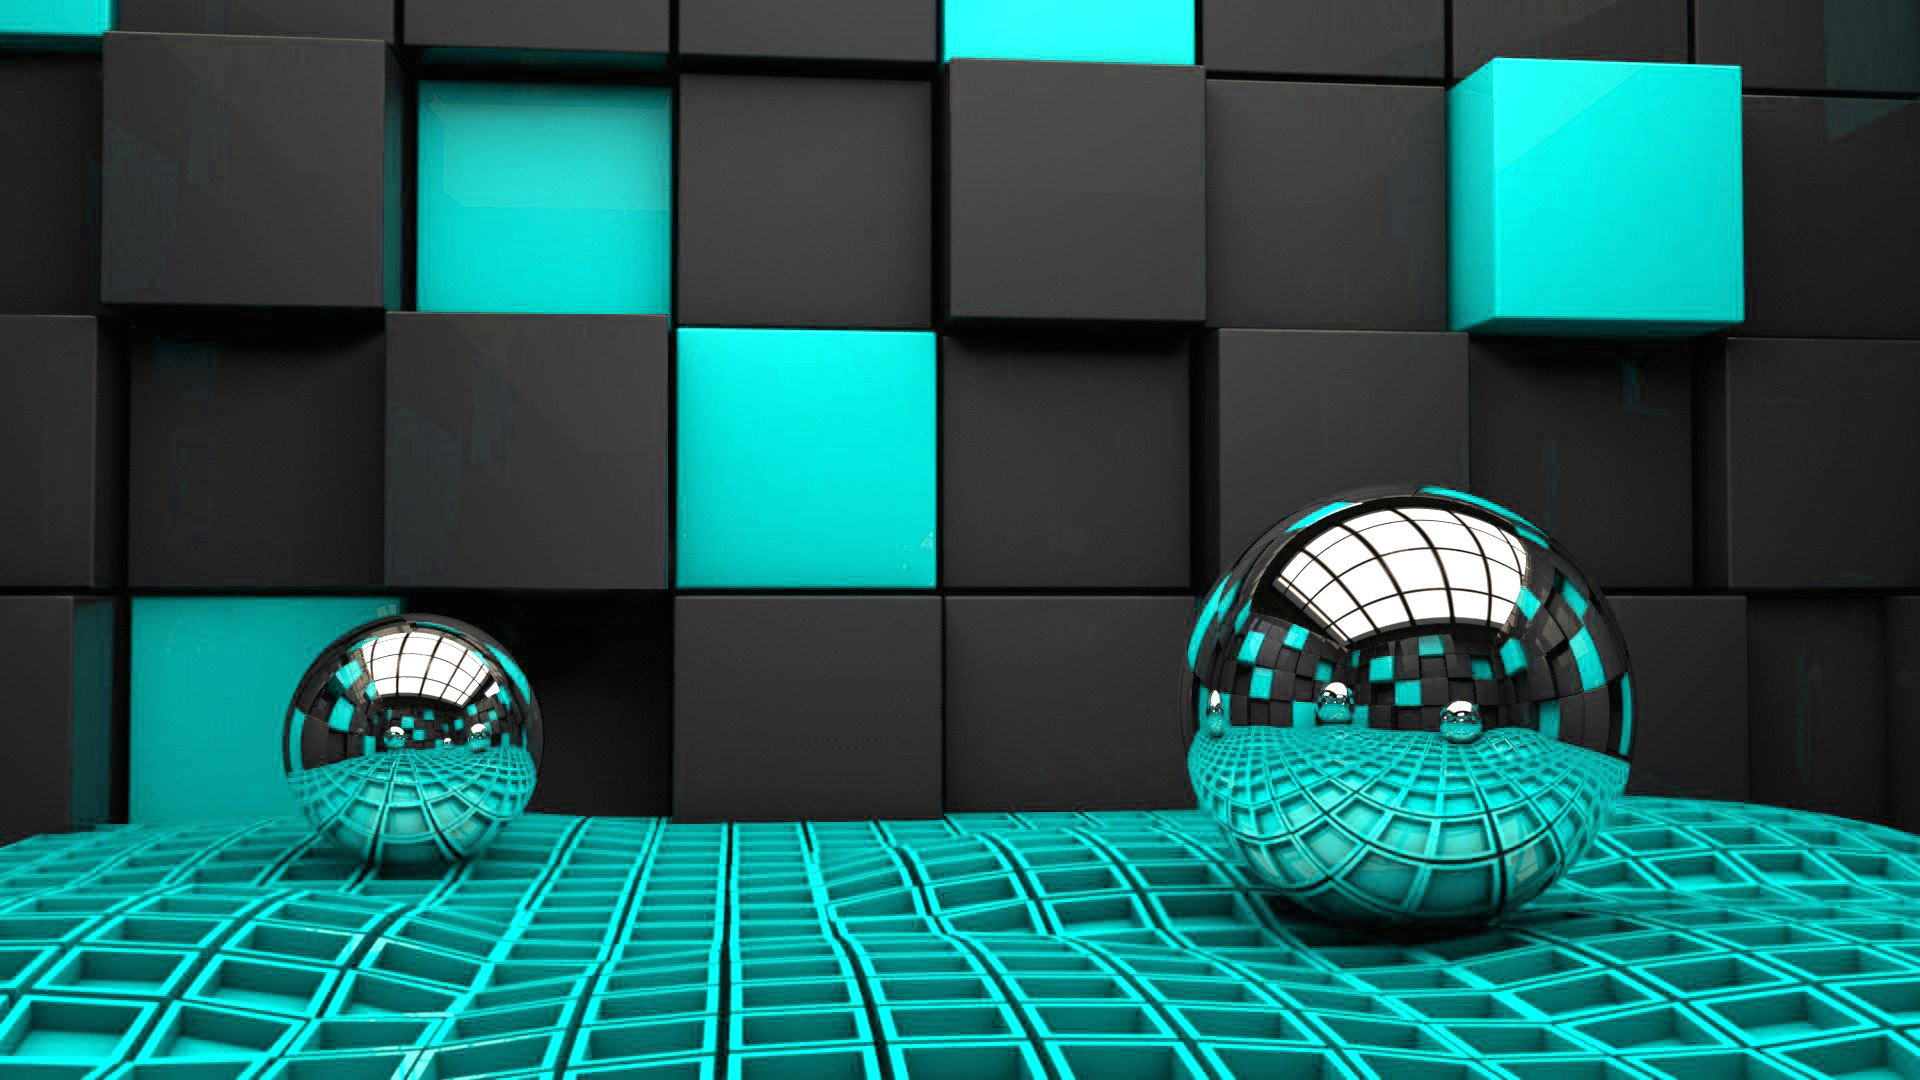 3D Wallpaper Desktop Download 1920x1080